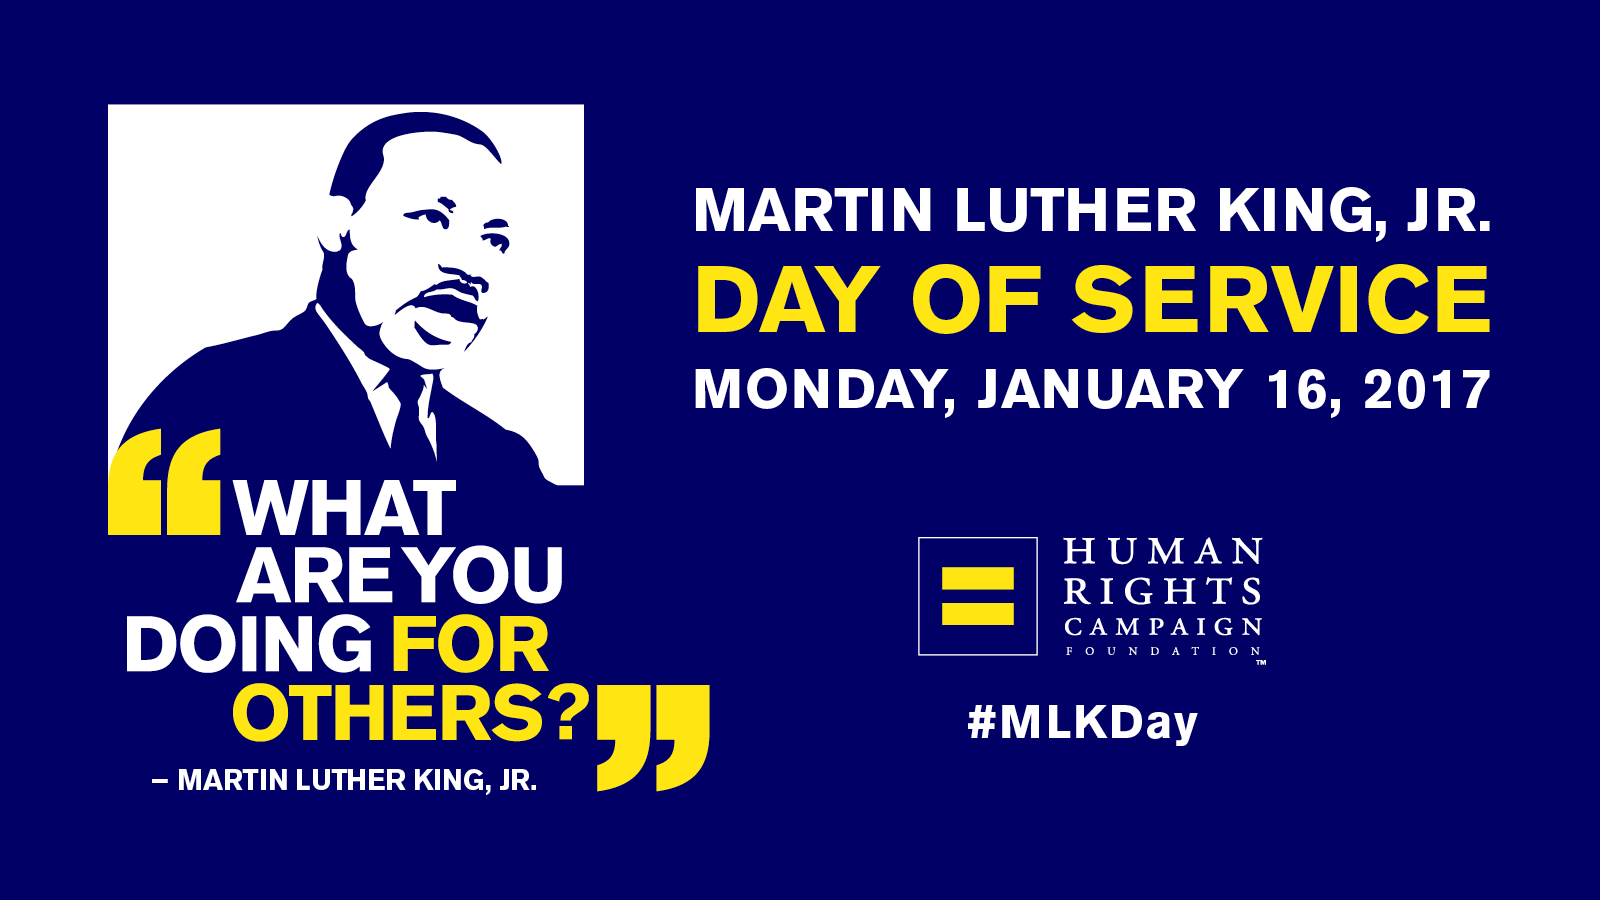 Mlk Day Of Service An Opportunity To Energize Communities Human